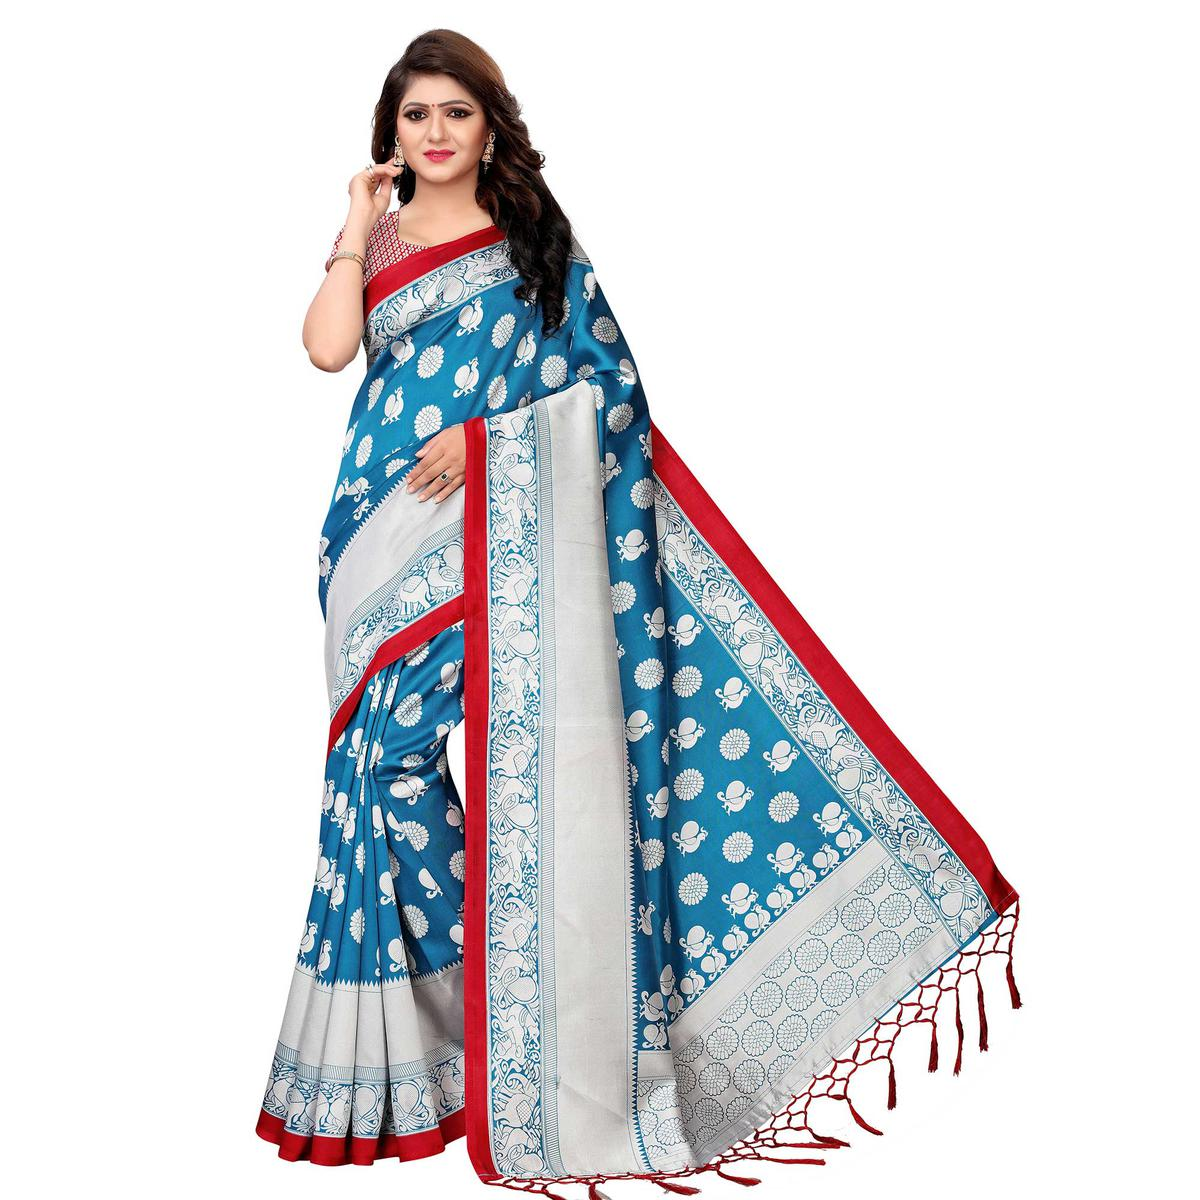 Eye-catching Blue Colored Festive Wear Printed Art Silk Saree